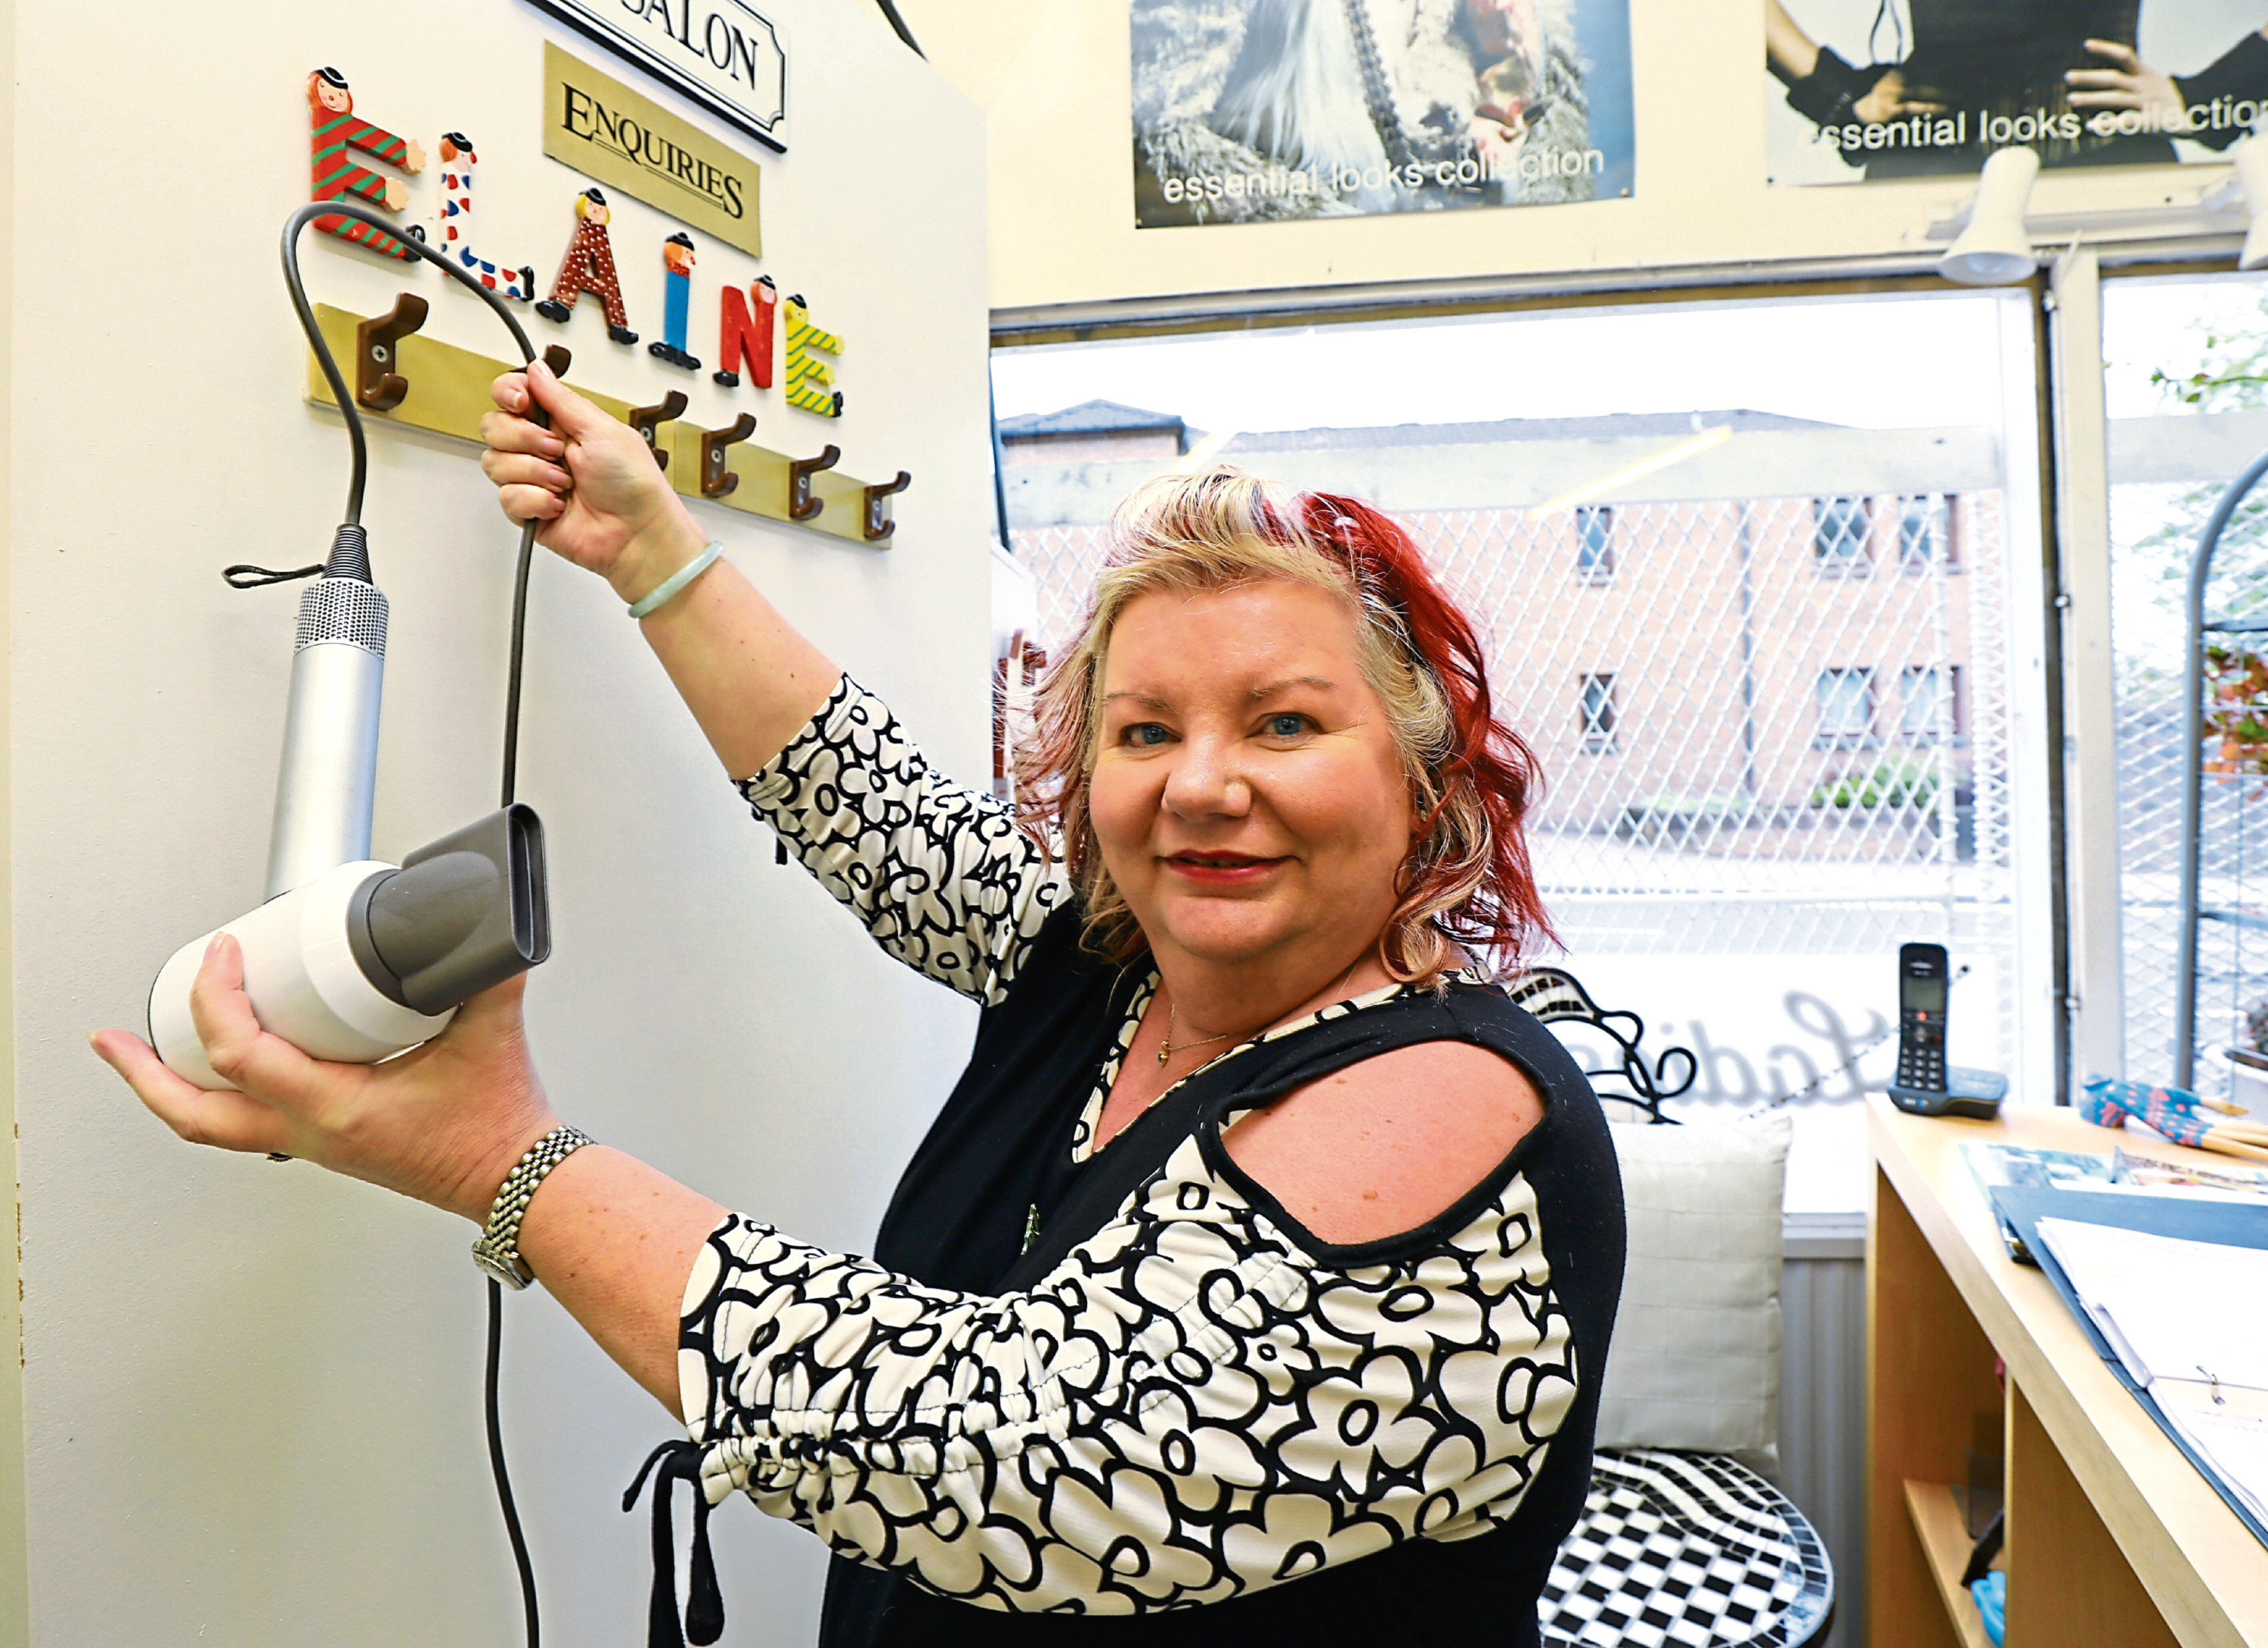 Hanging up her hairdryer, is Elaine Symington, who is retiring after 33 years in Elaine's Hairdressers.